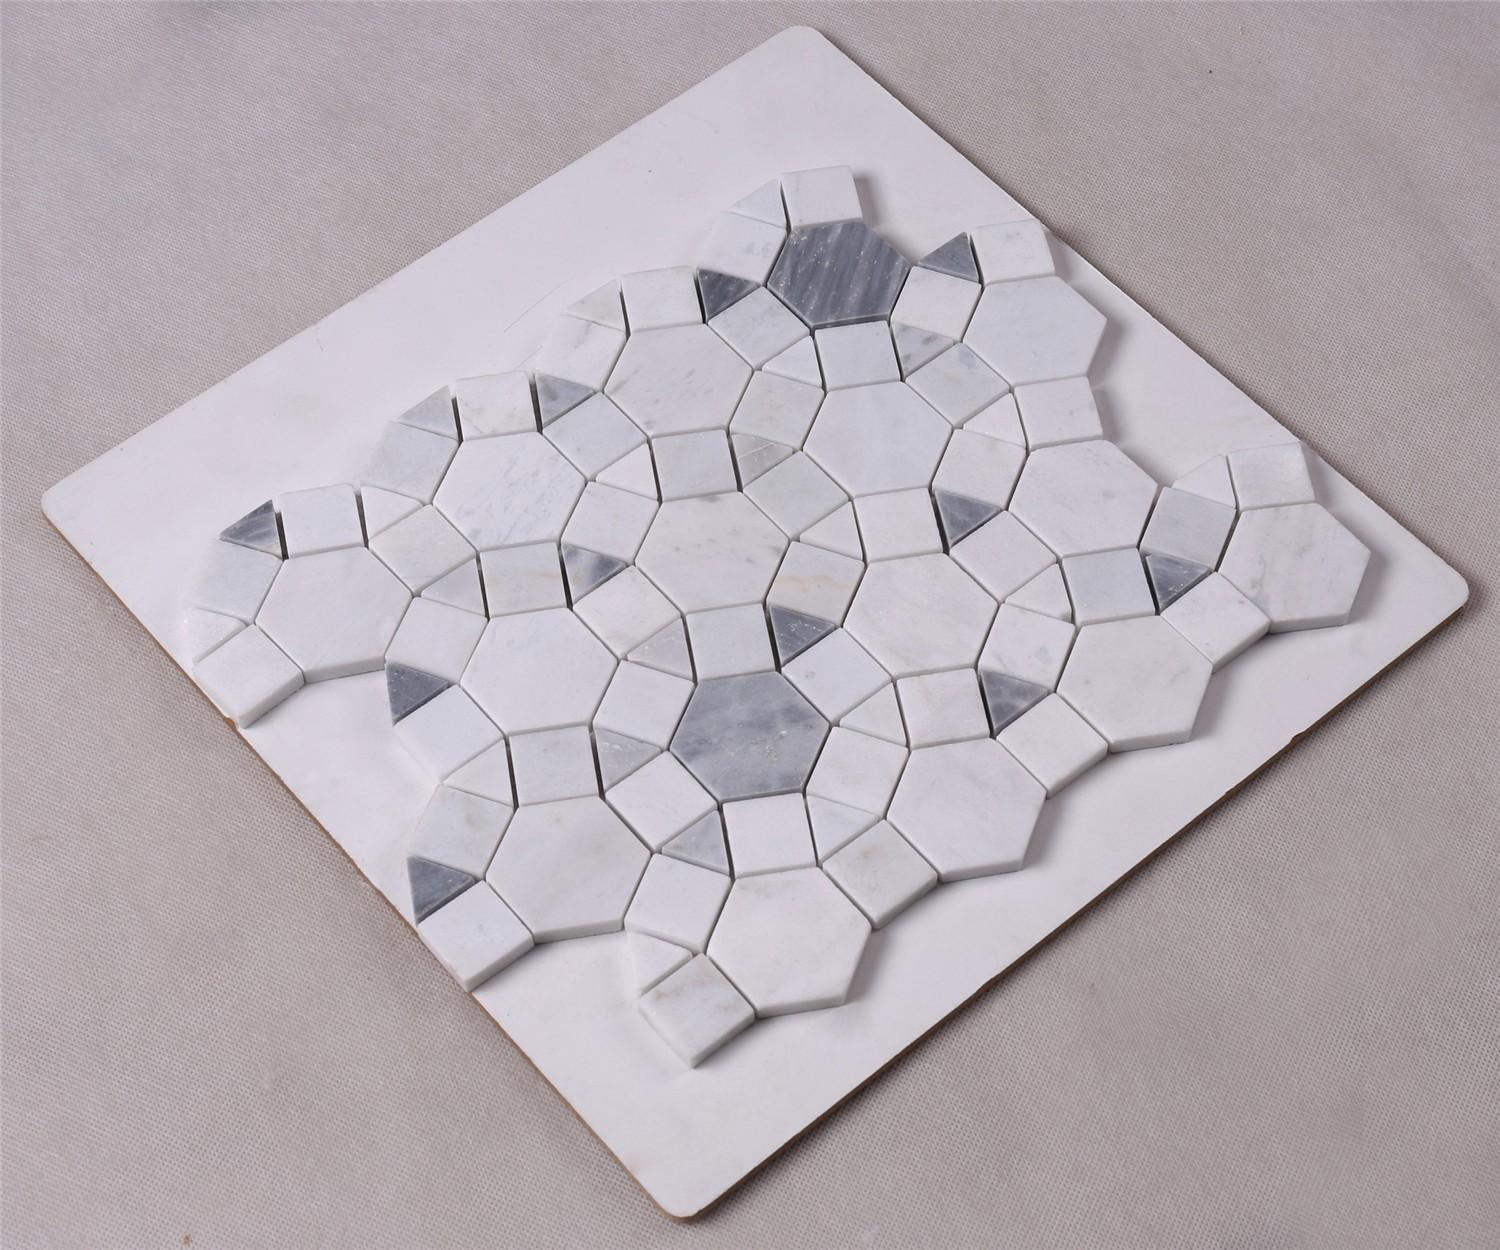 product-Heng Xing-Gray Mixed Carrara White Marble Mosaic Tile for Wall Decoration-img